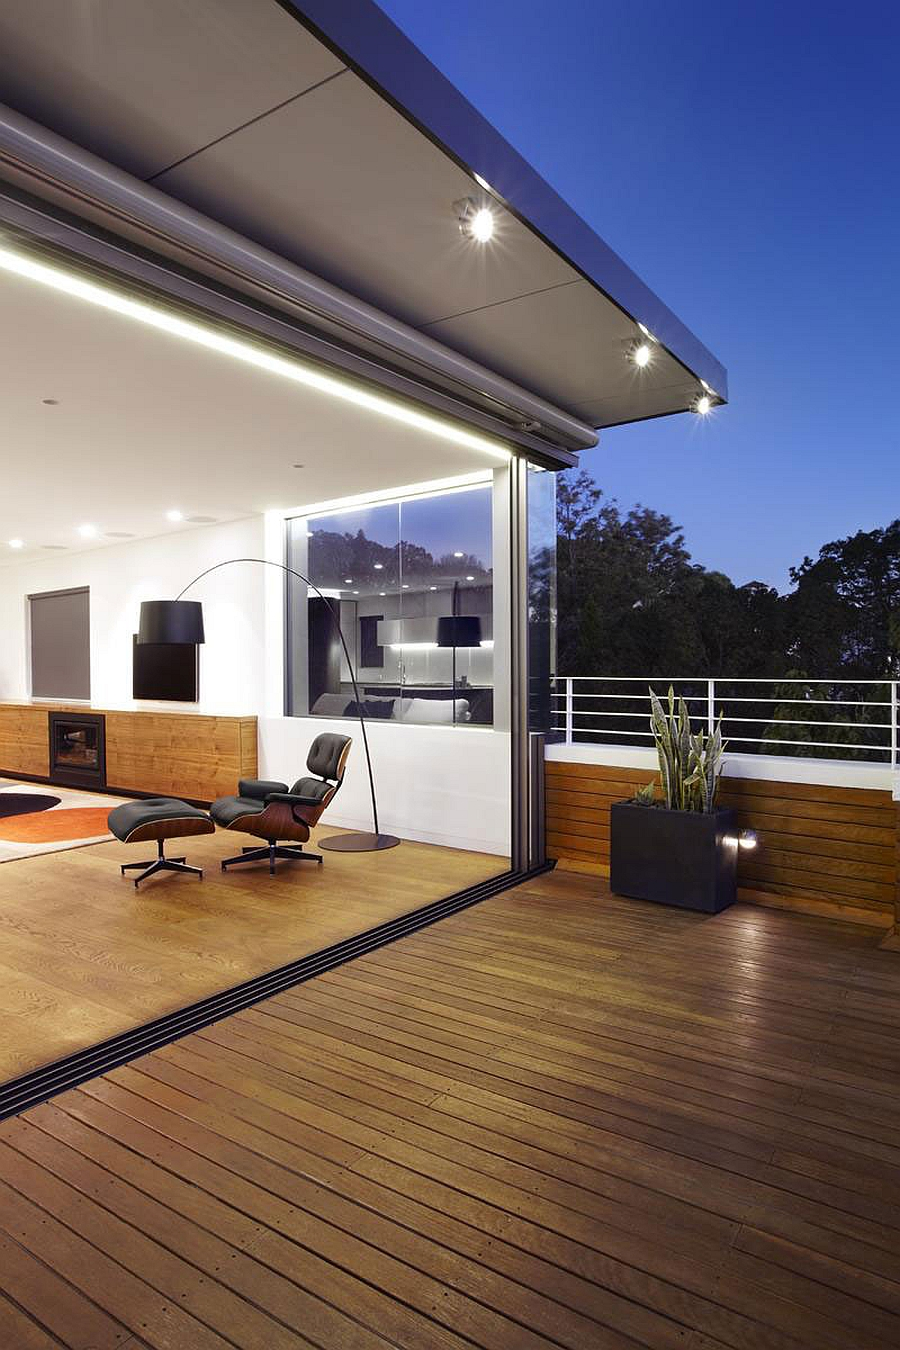 Apartment Renovation Ideas Sweeping Views Of Sydney And Lovely Earth Tones Shape The